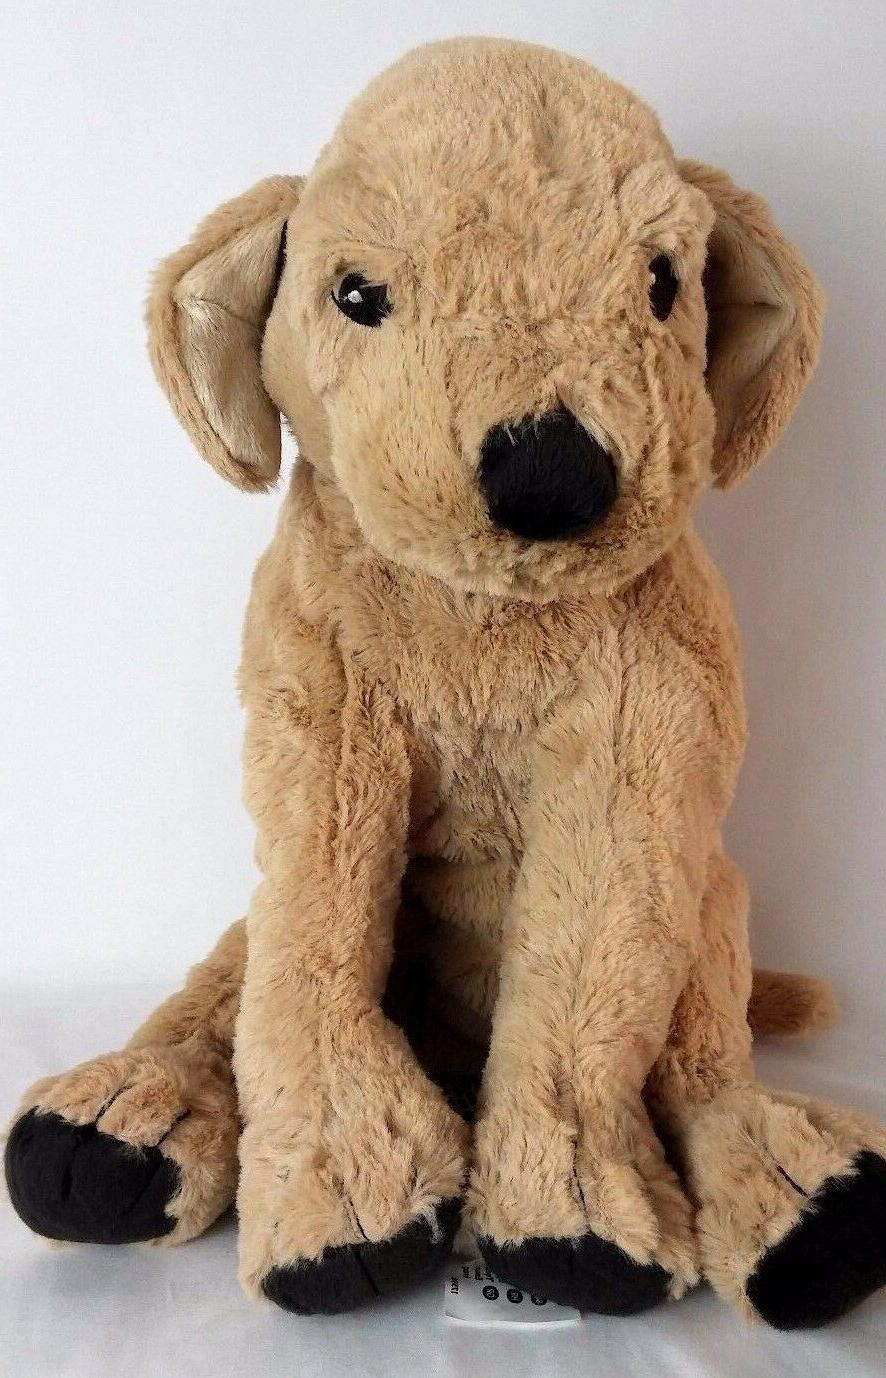 IKEA Golden Retriever Dog Puppy Kids Soft Stuffed Animal Plush Toy